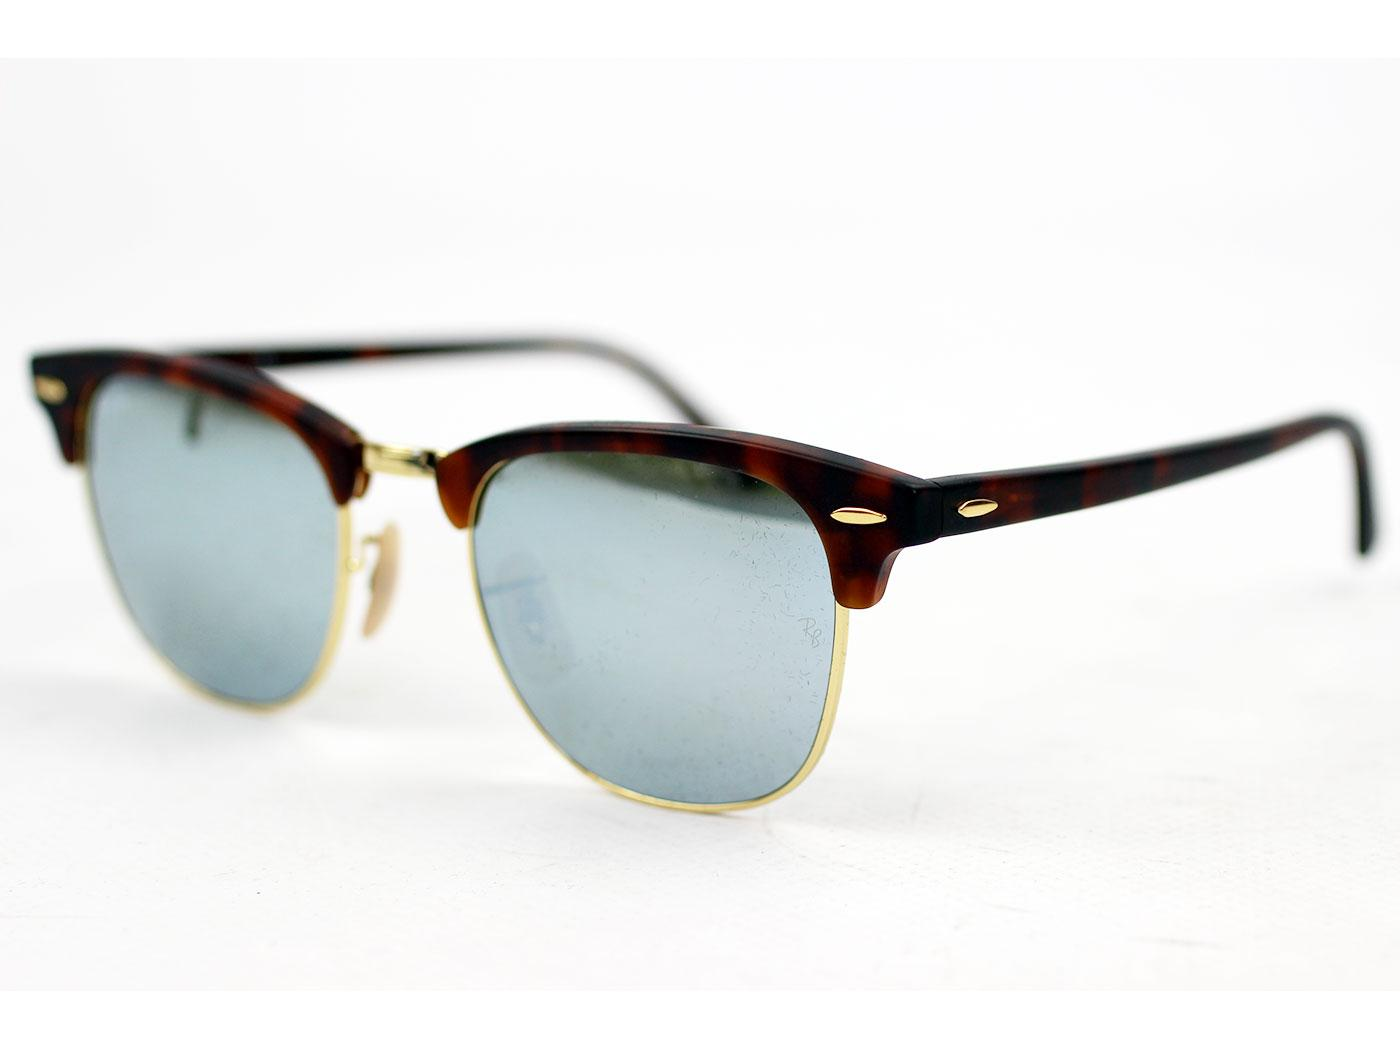 be0f516bdf91 Ray-Ban Clubmaster Retro 50s Mod Mirror Lens Sunglasses Havanna